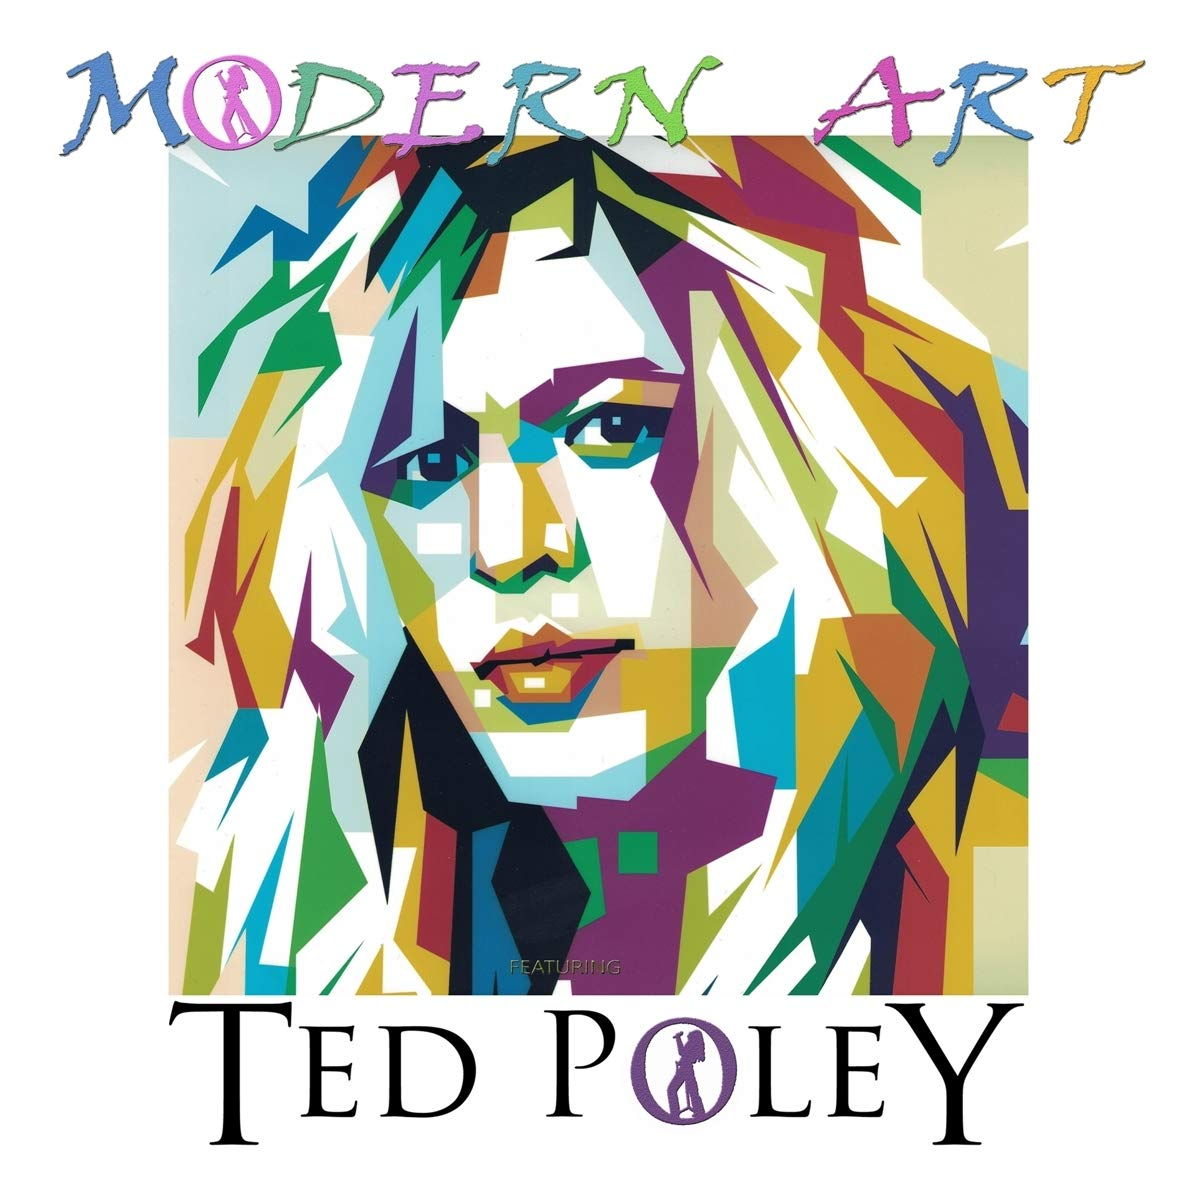 CD : MODERN ART / POLEY, TED - Modern Art (United Kingdom - Import)